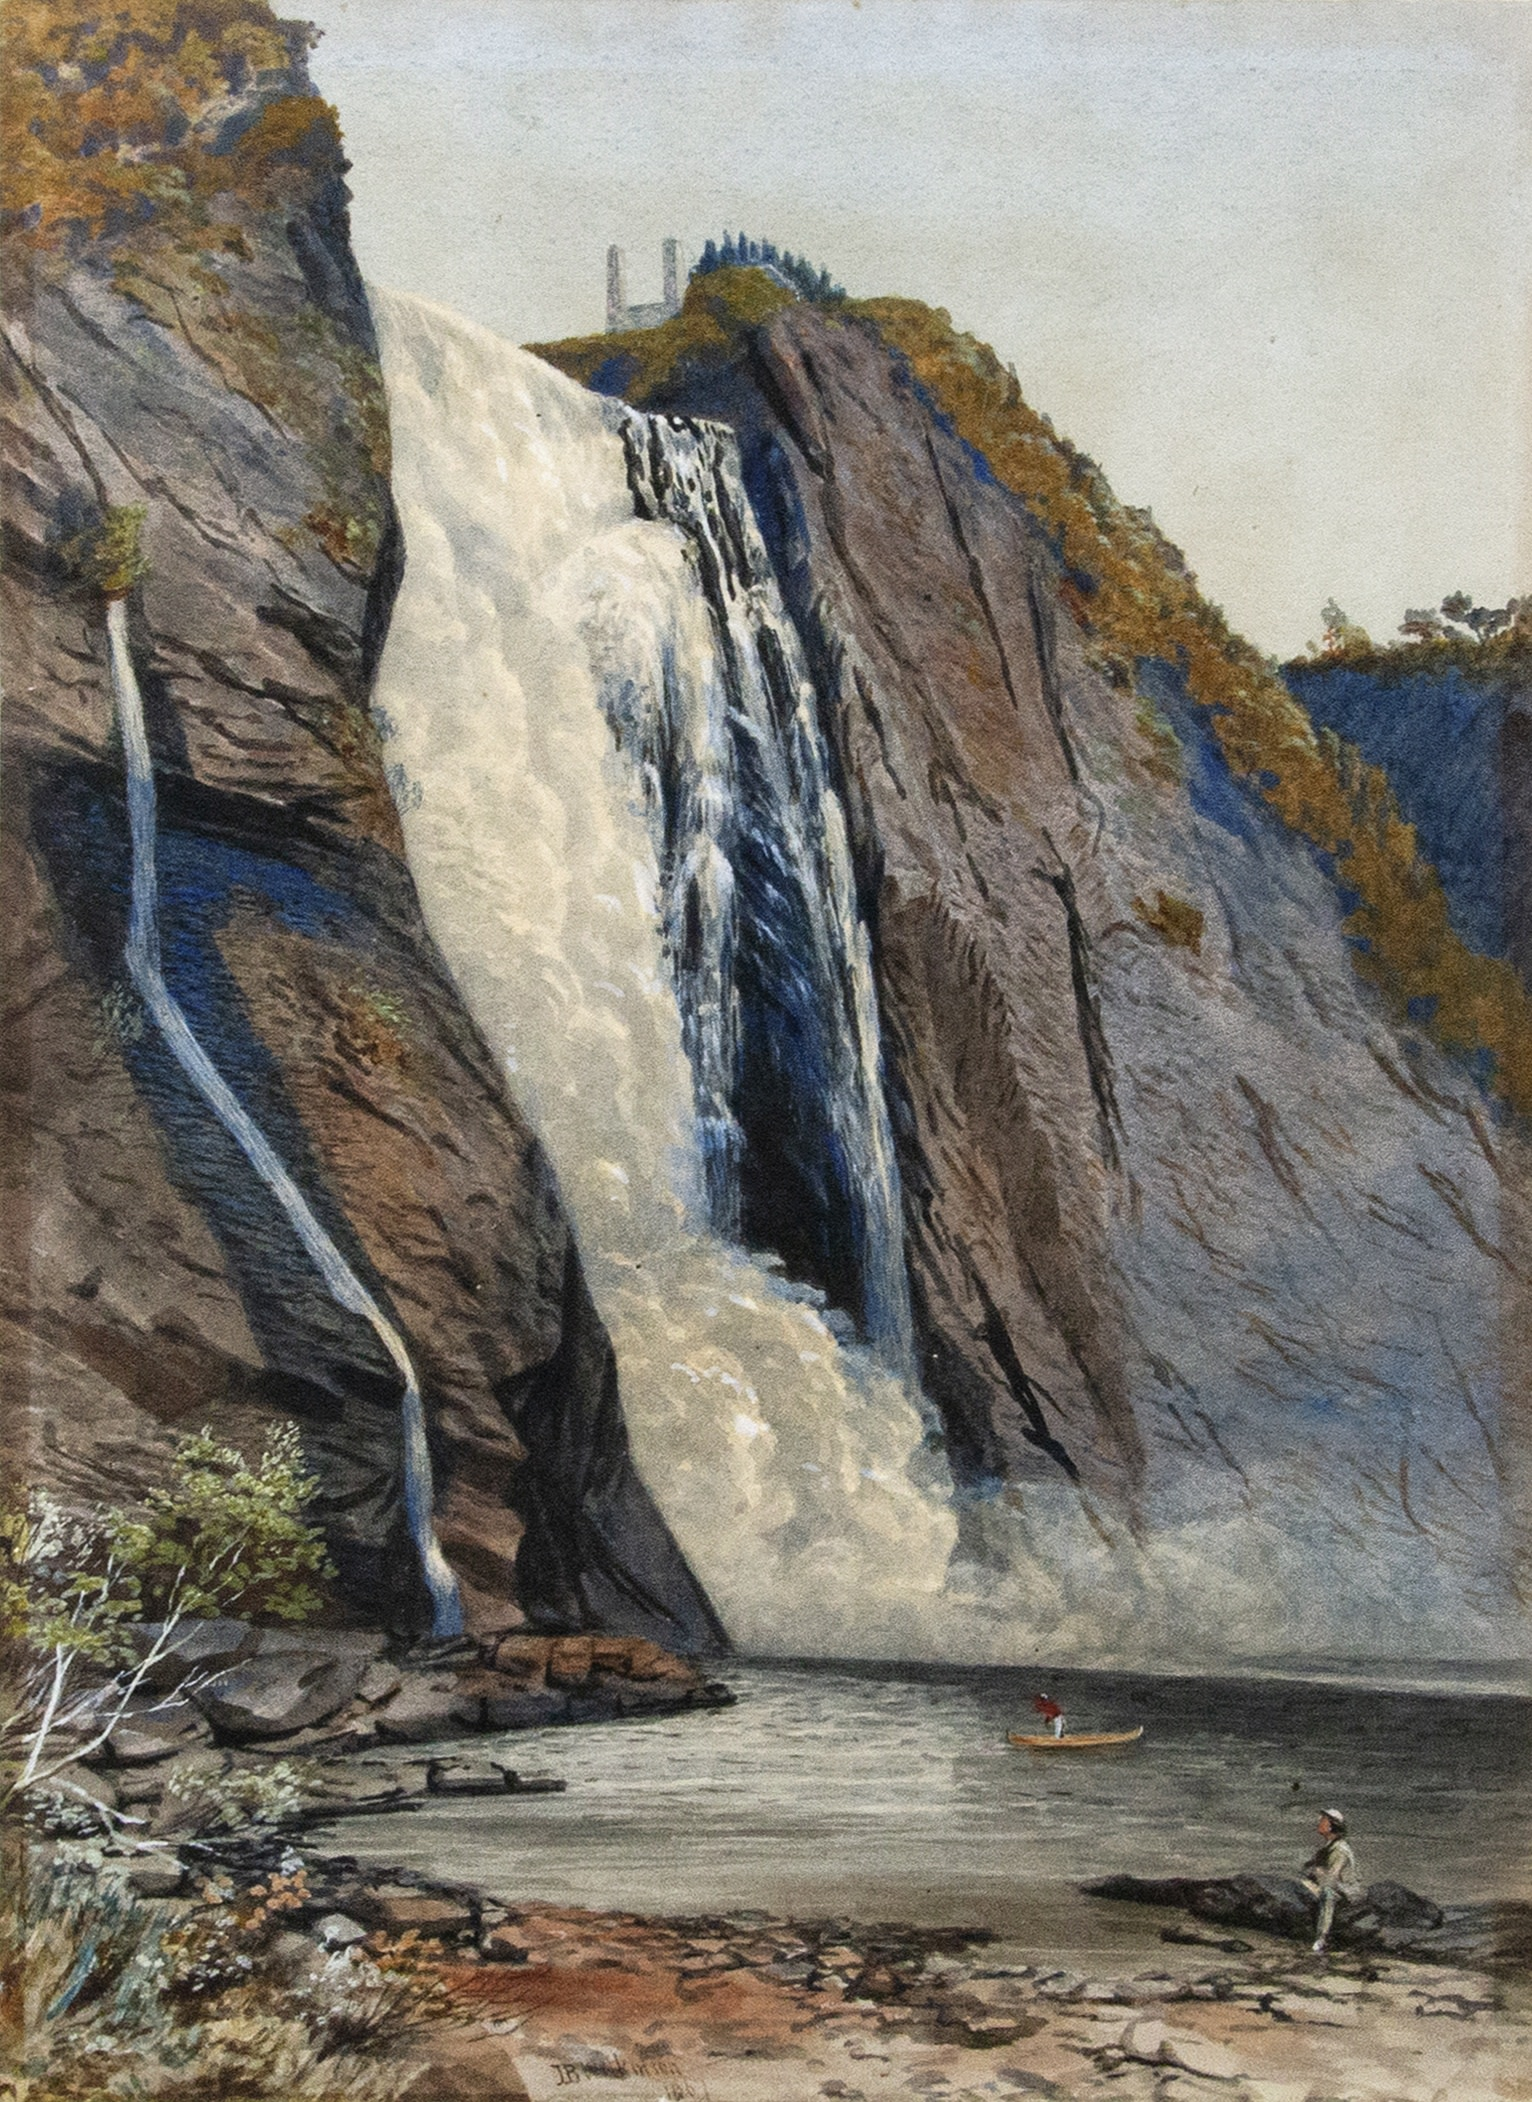 John B. Wilkinson (active 1864 to 1915) Montmorency Falls (Chutes Montmorency), 1867 Watercolour on paper, 16 x 11 ½ in